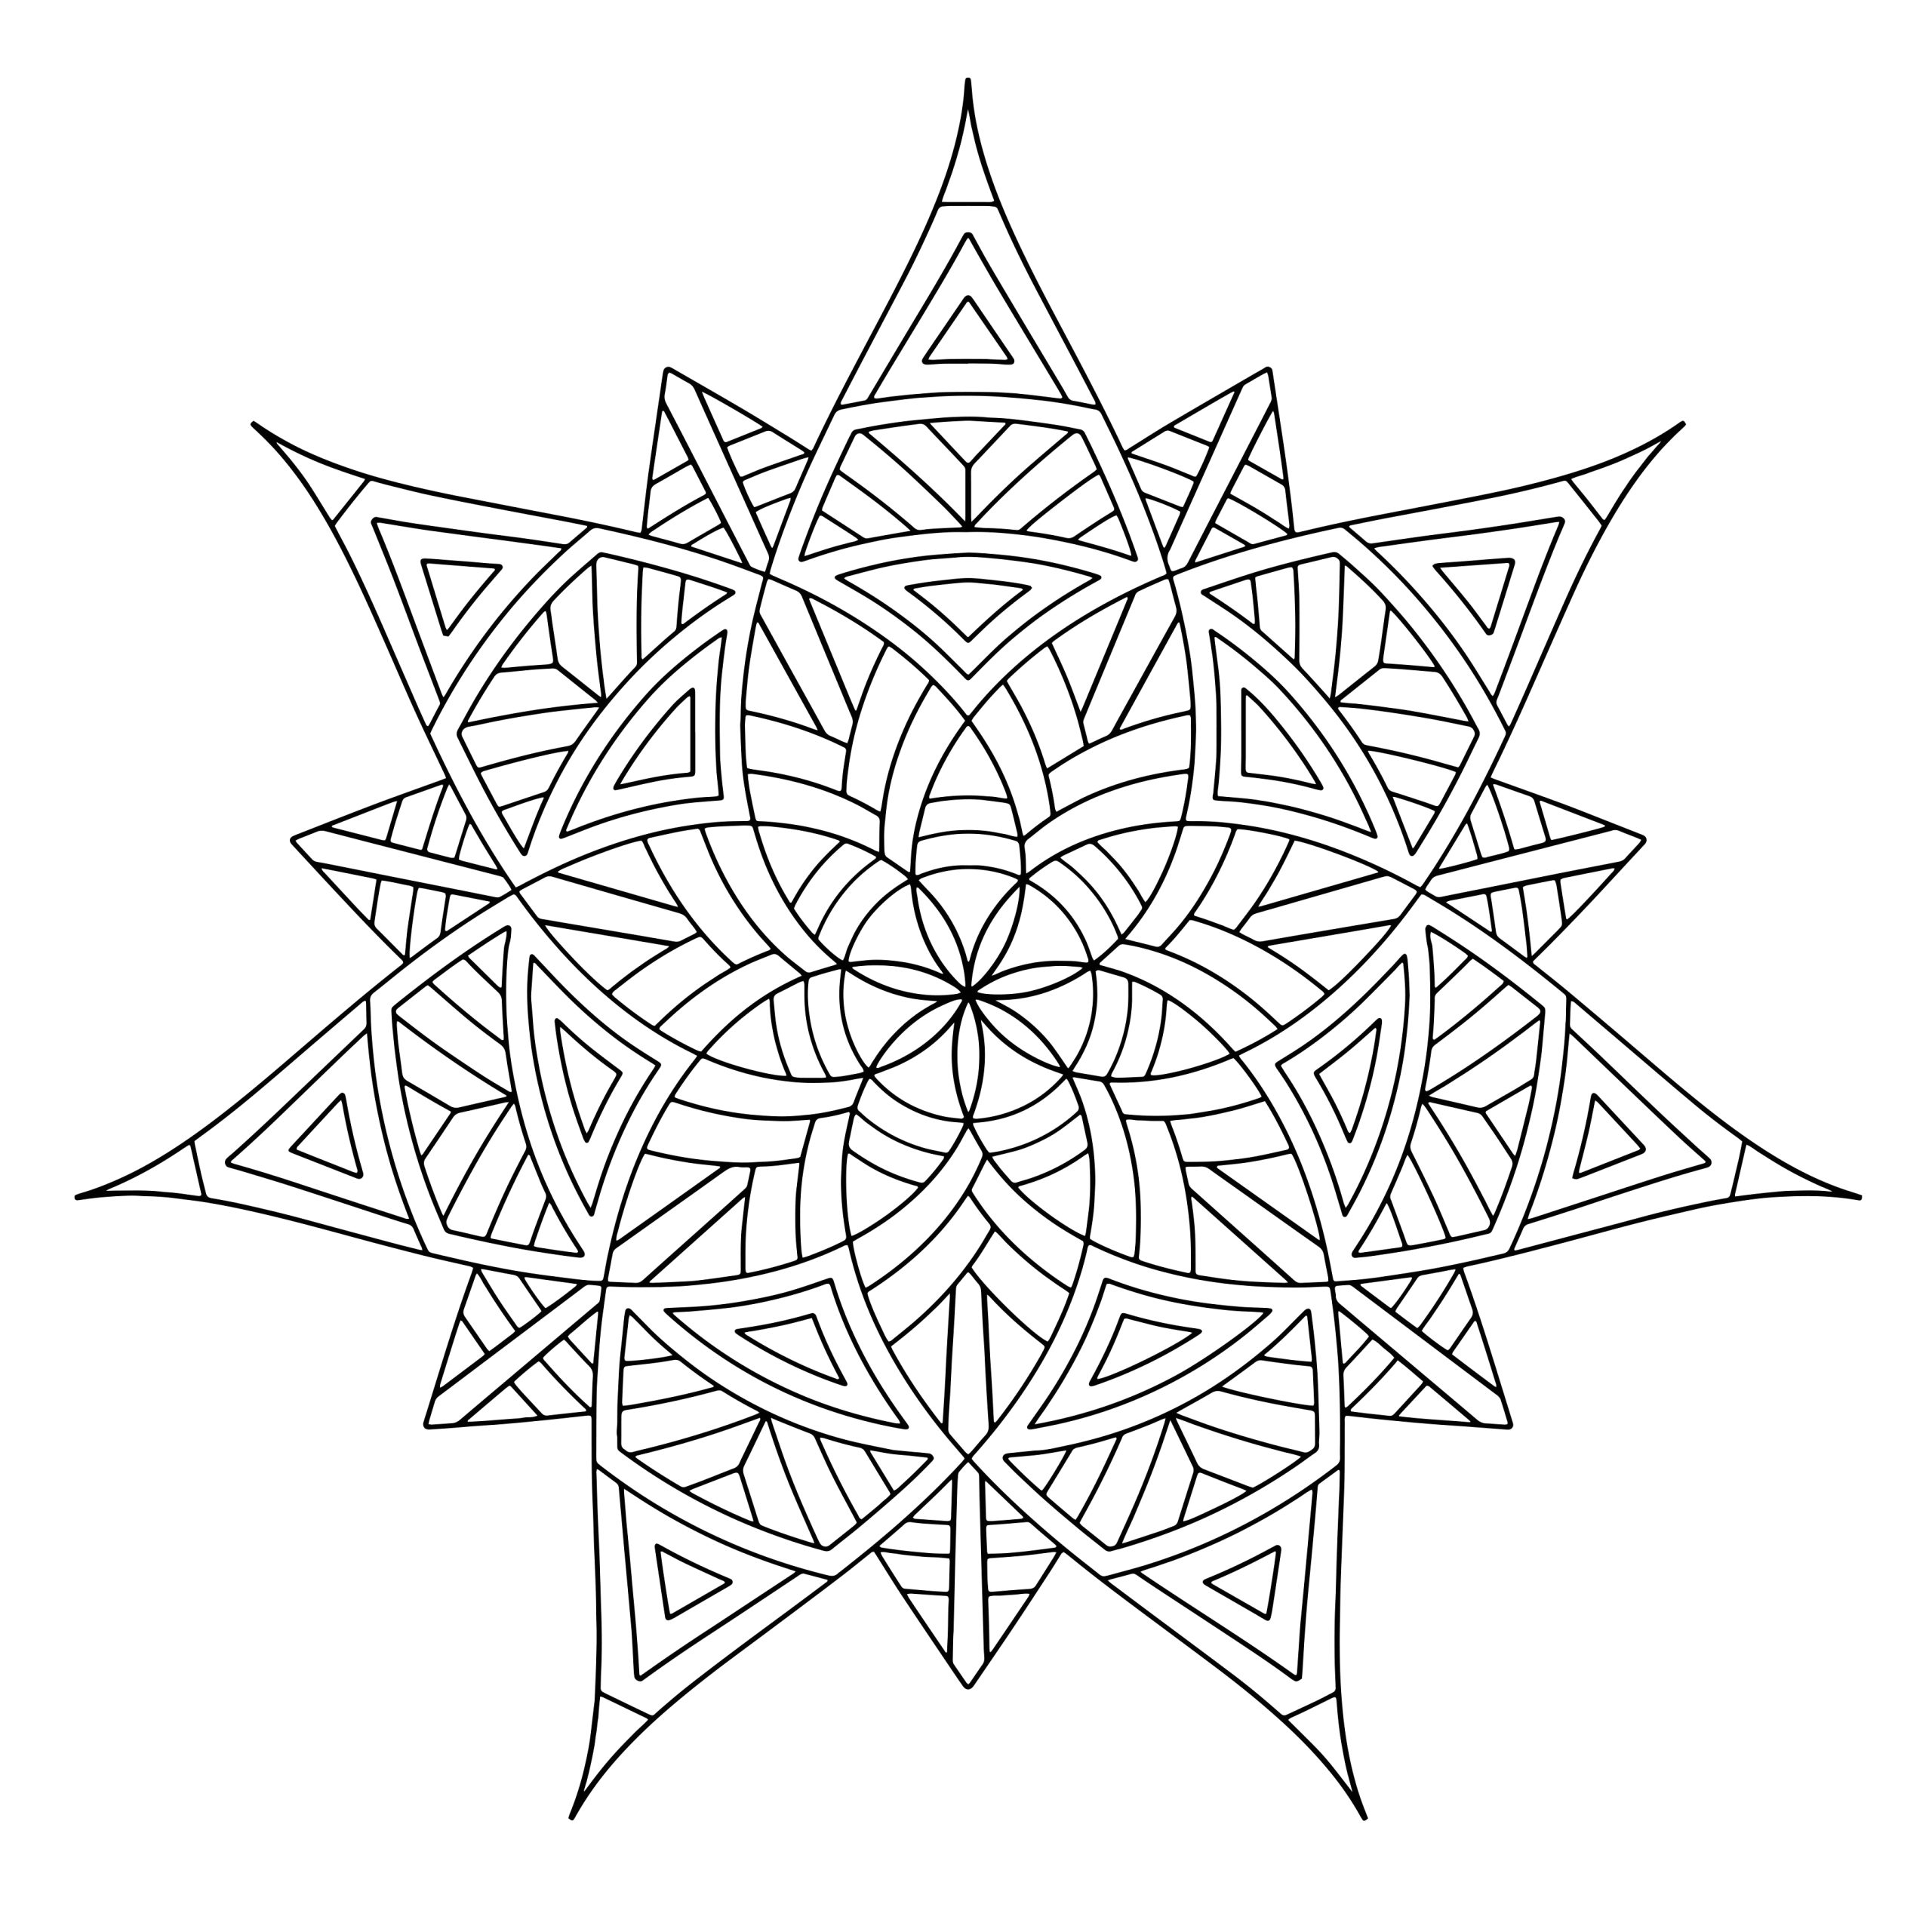 Pages to Print and Color for Adults Free Printable Geometric Coloring Pages for Adults